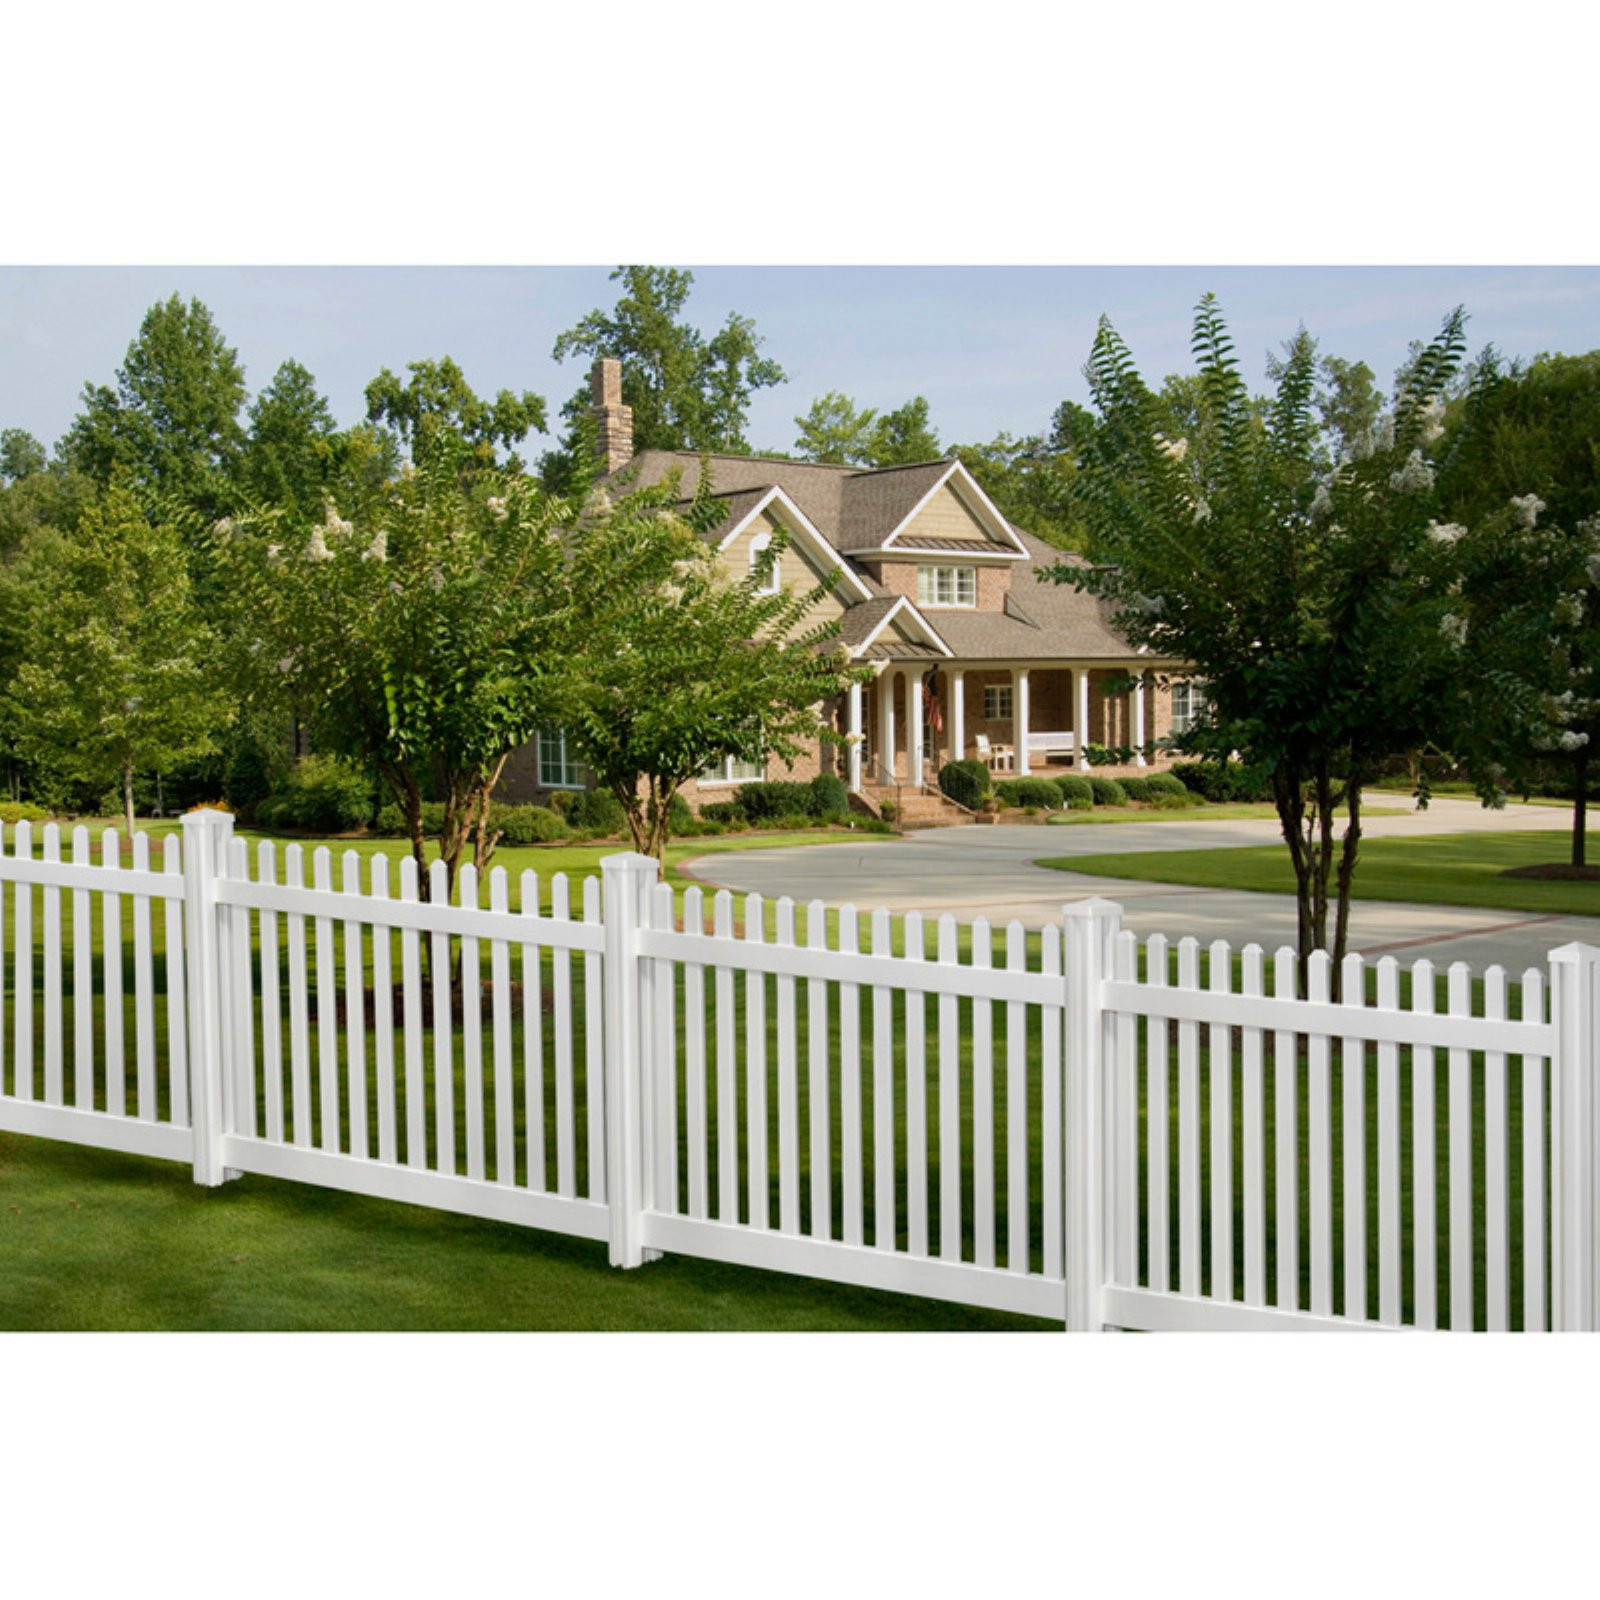 Wam Bam Premium Classic Picket Vinyl Fence with Post and Cap 4 ft. by WamBam Fence Inc